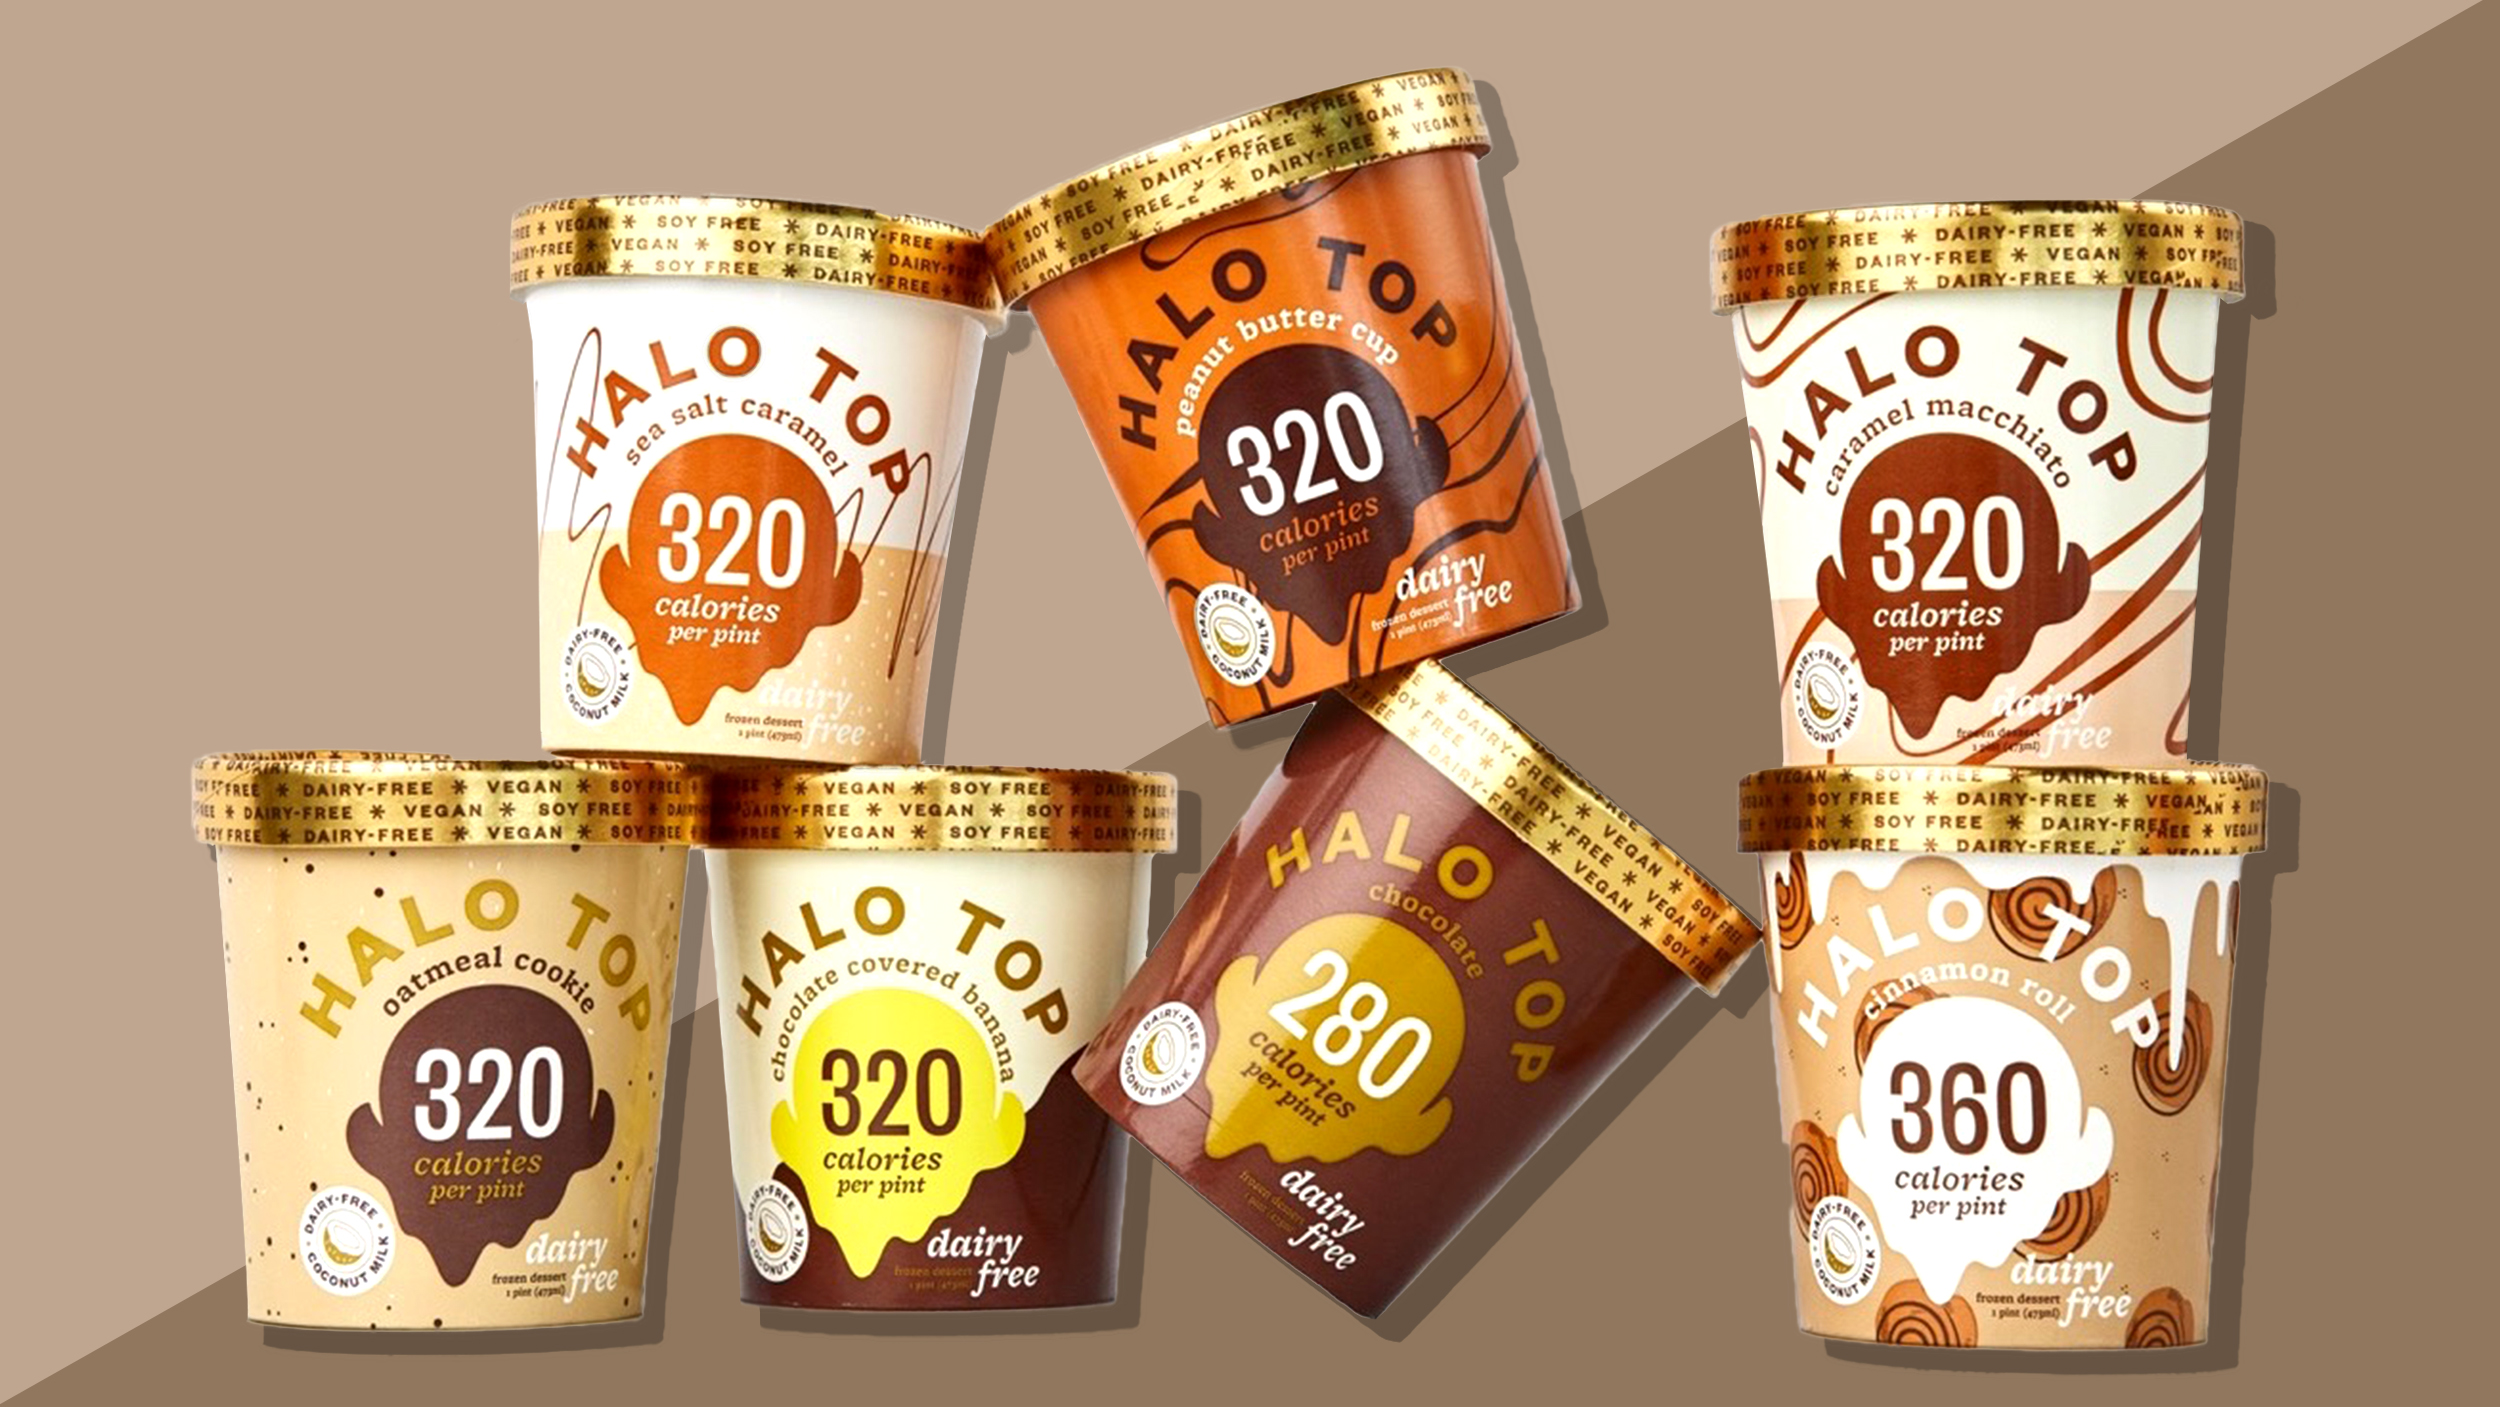 Halo Top Now Has Vegan And Dairy Free Ice Cream